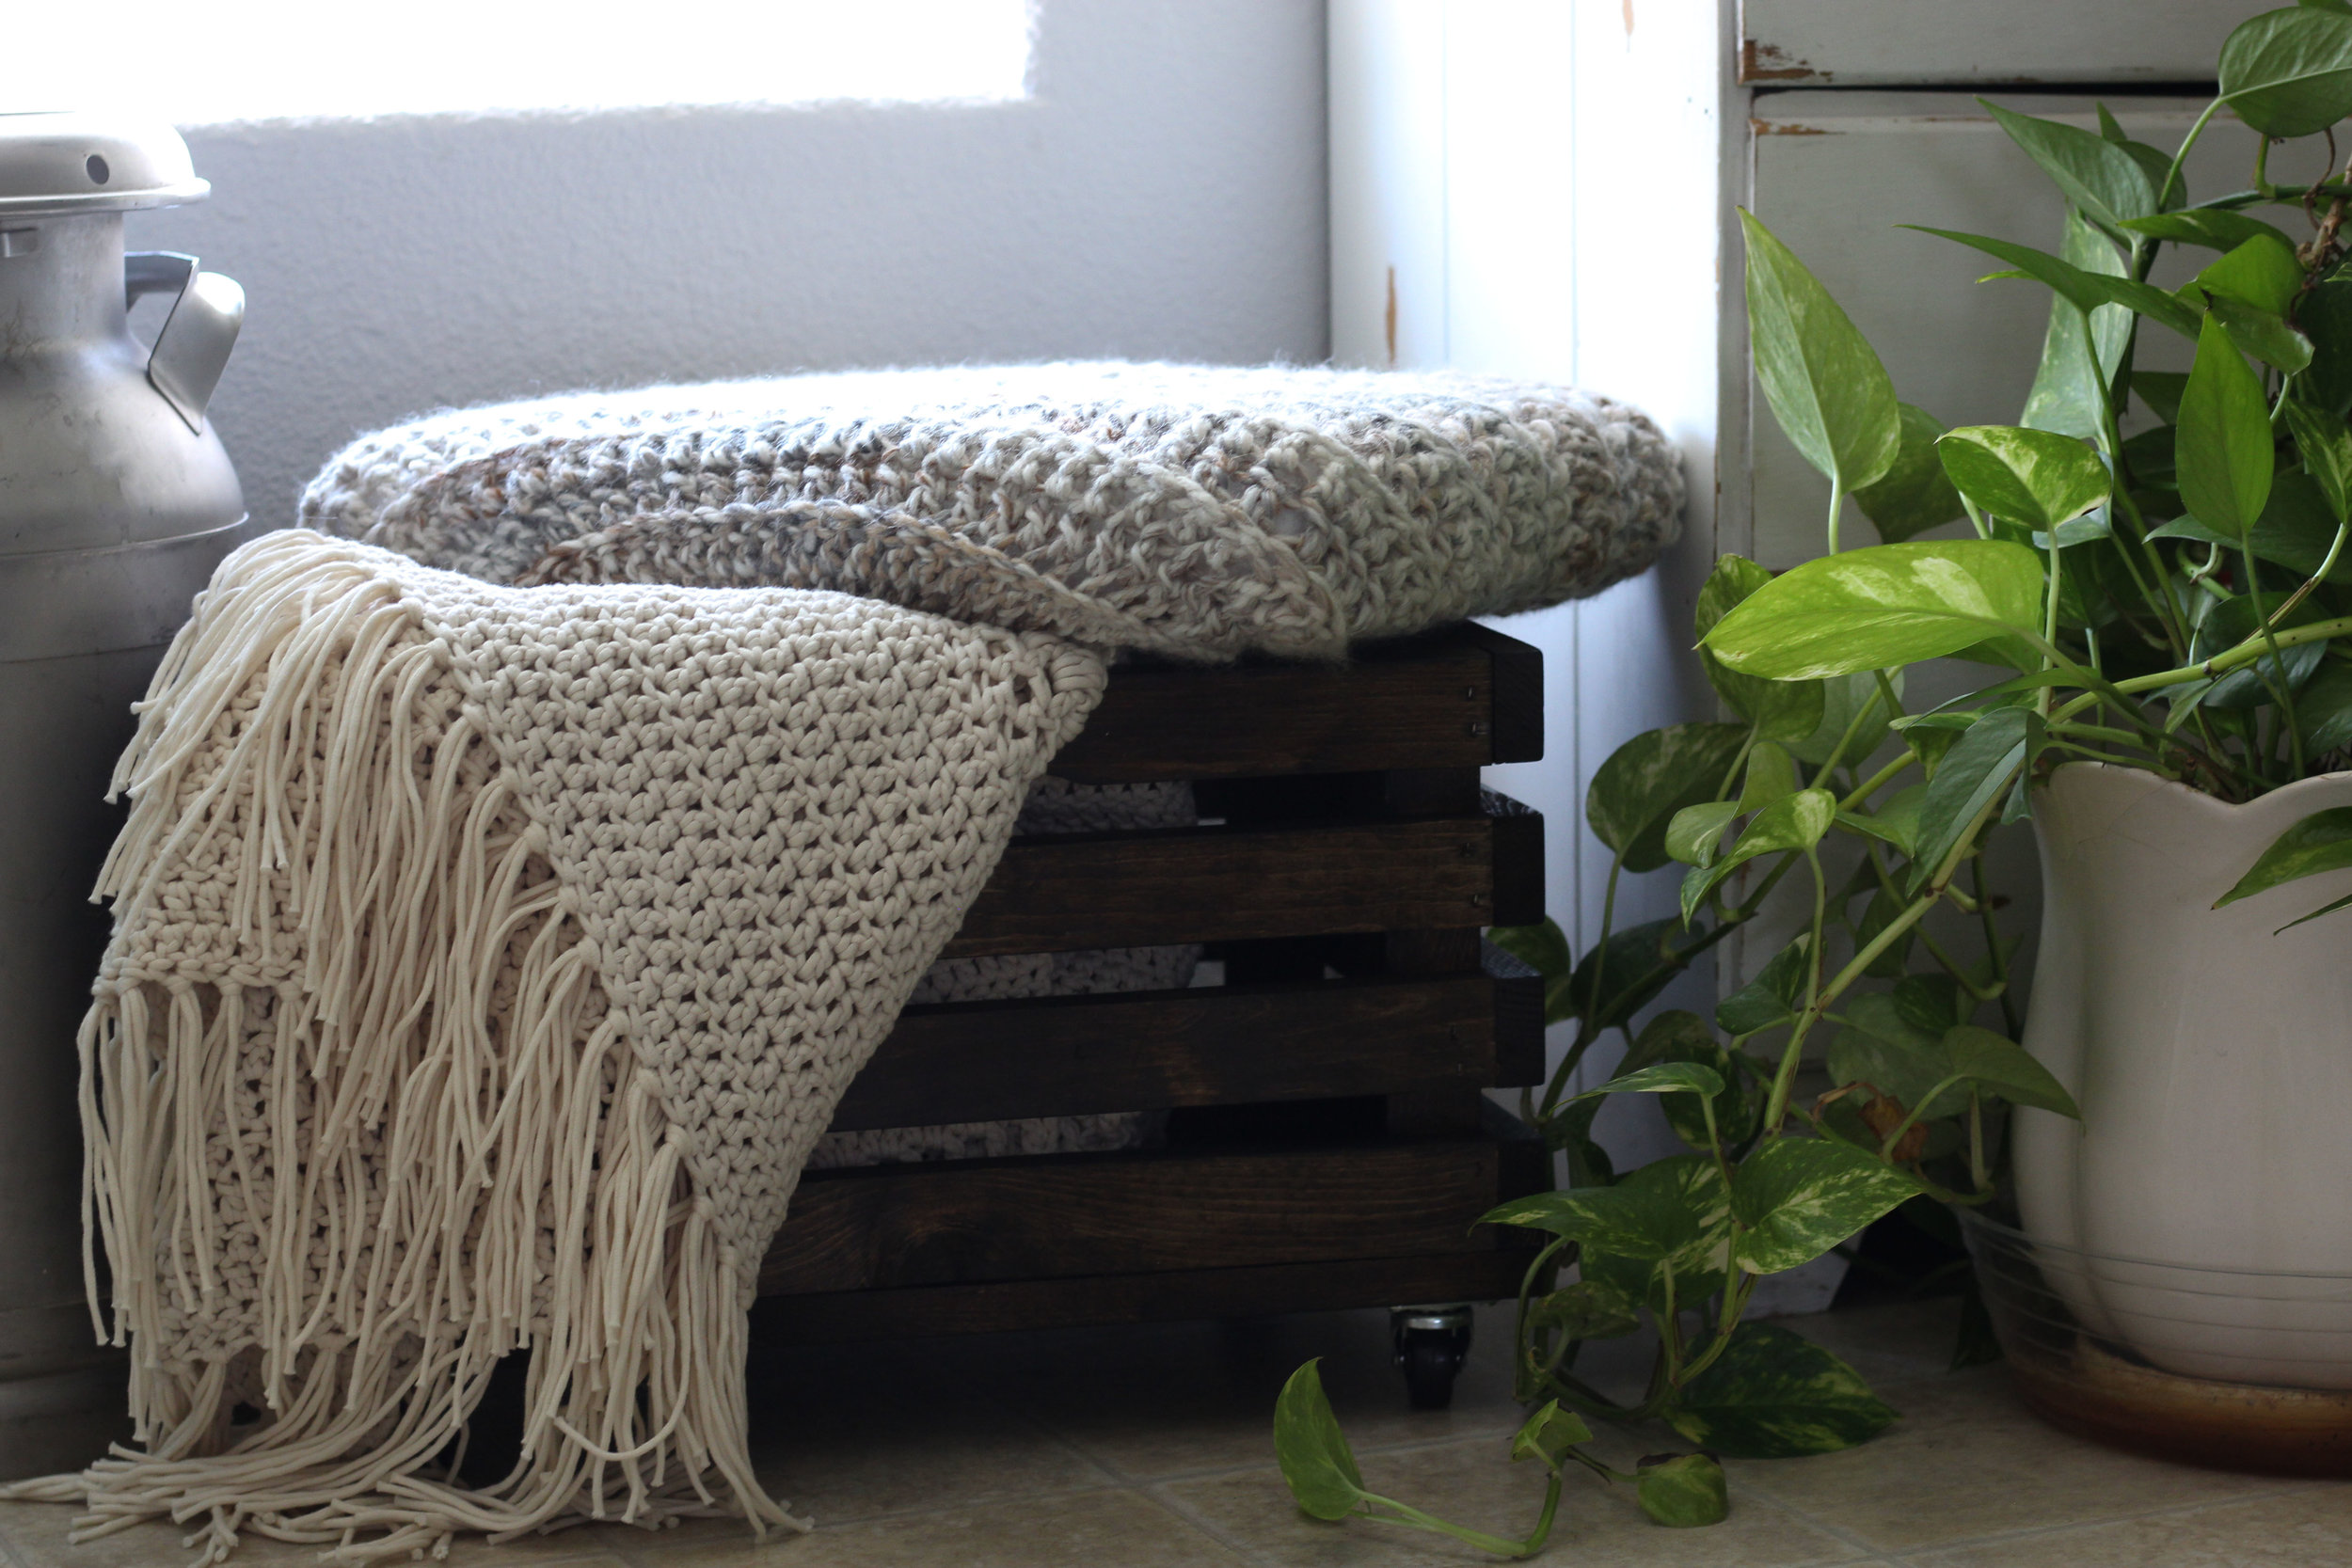 """Crochet Hygge blanket pattern can be found in the """"pattern"""" section of the blog"""